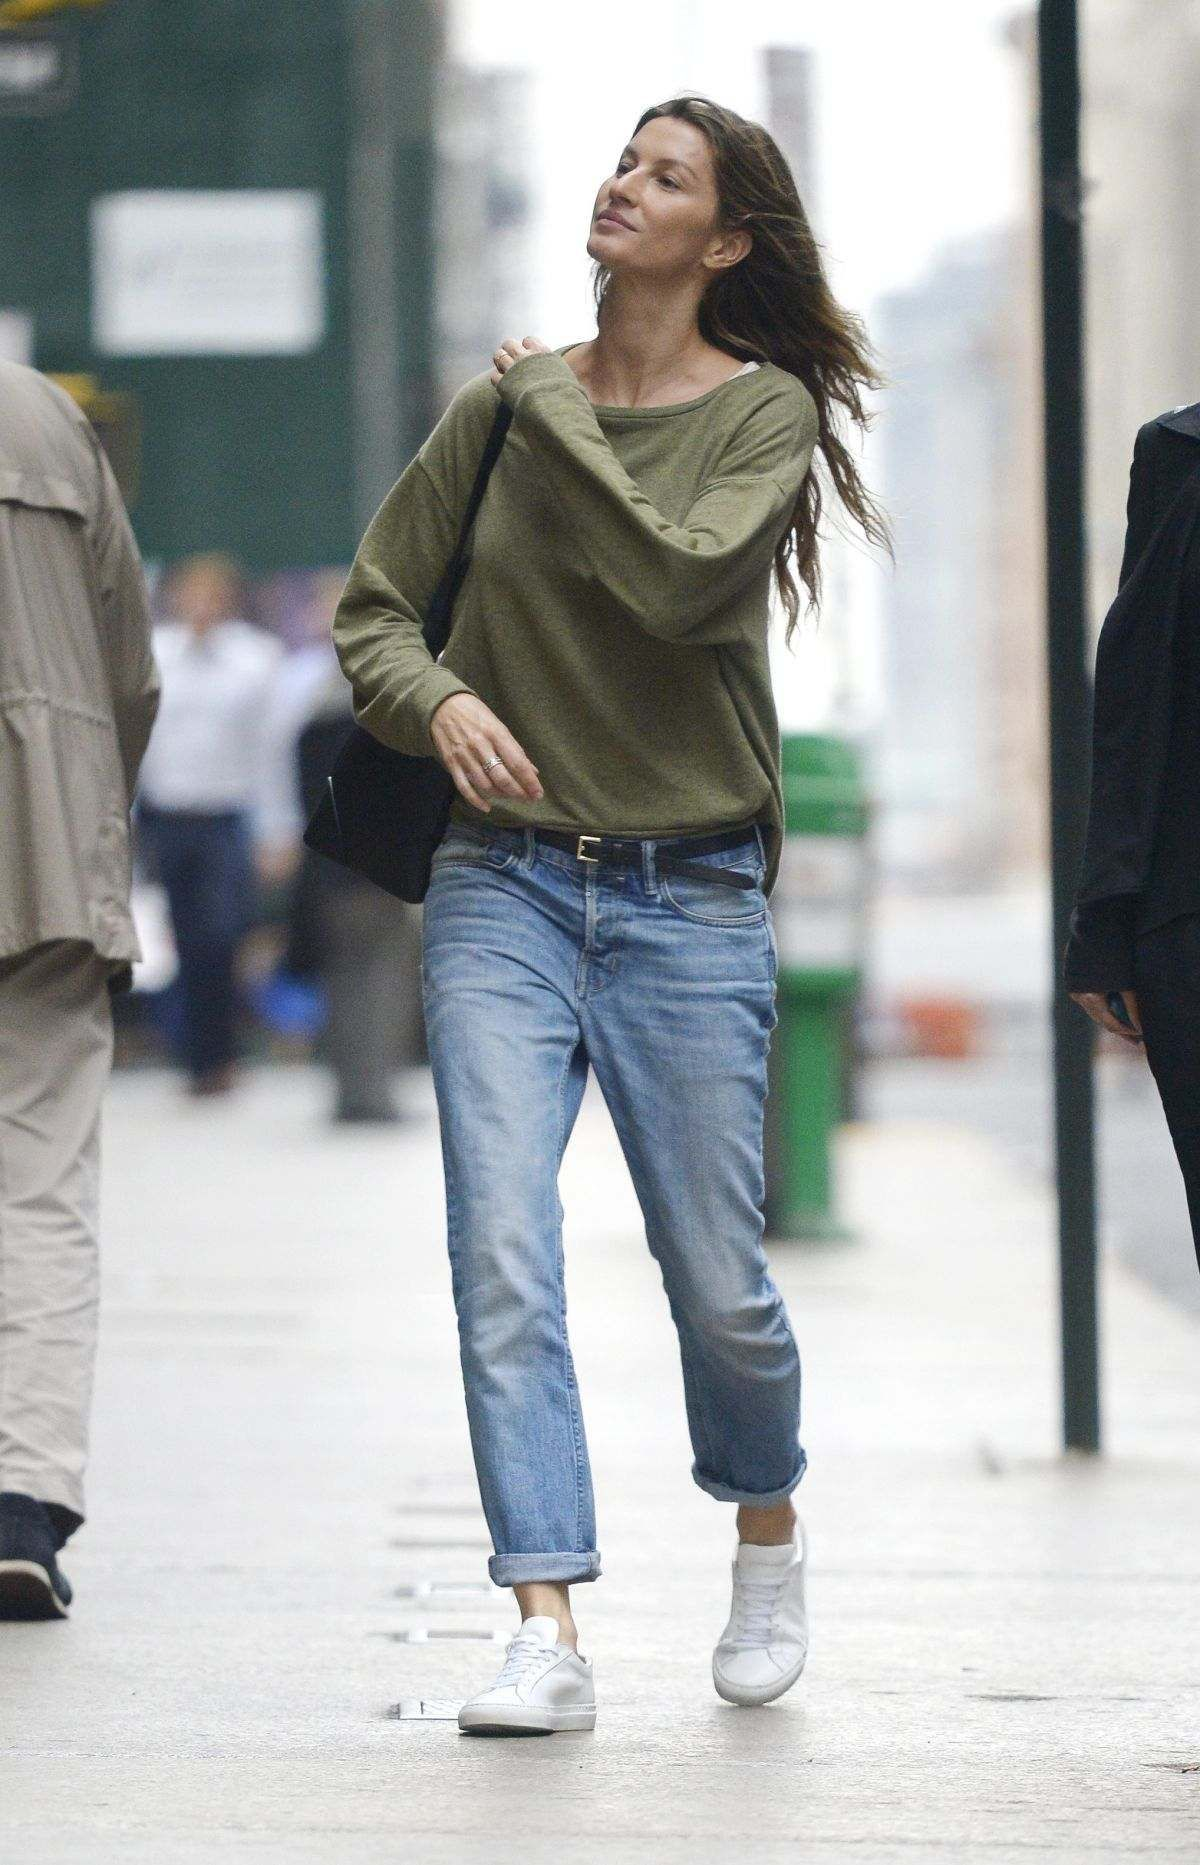 1d21128bf Gisele Bundchen Out And About In New York   Ah! Gisele!   Gisele ...